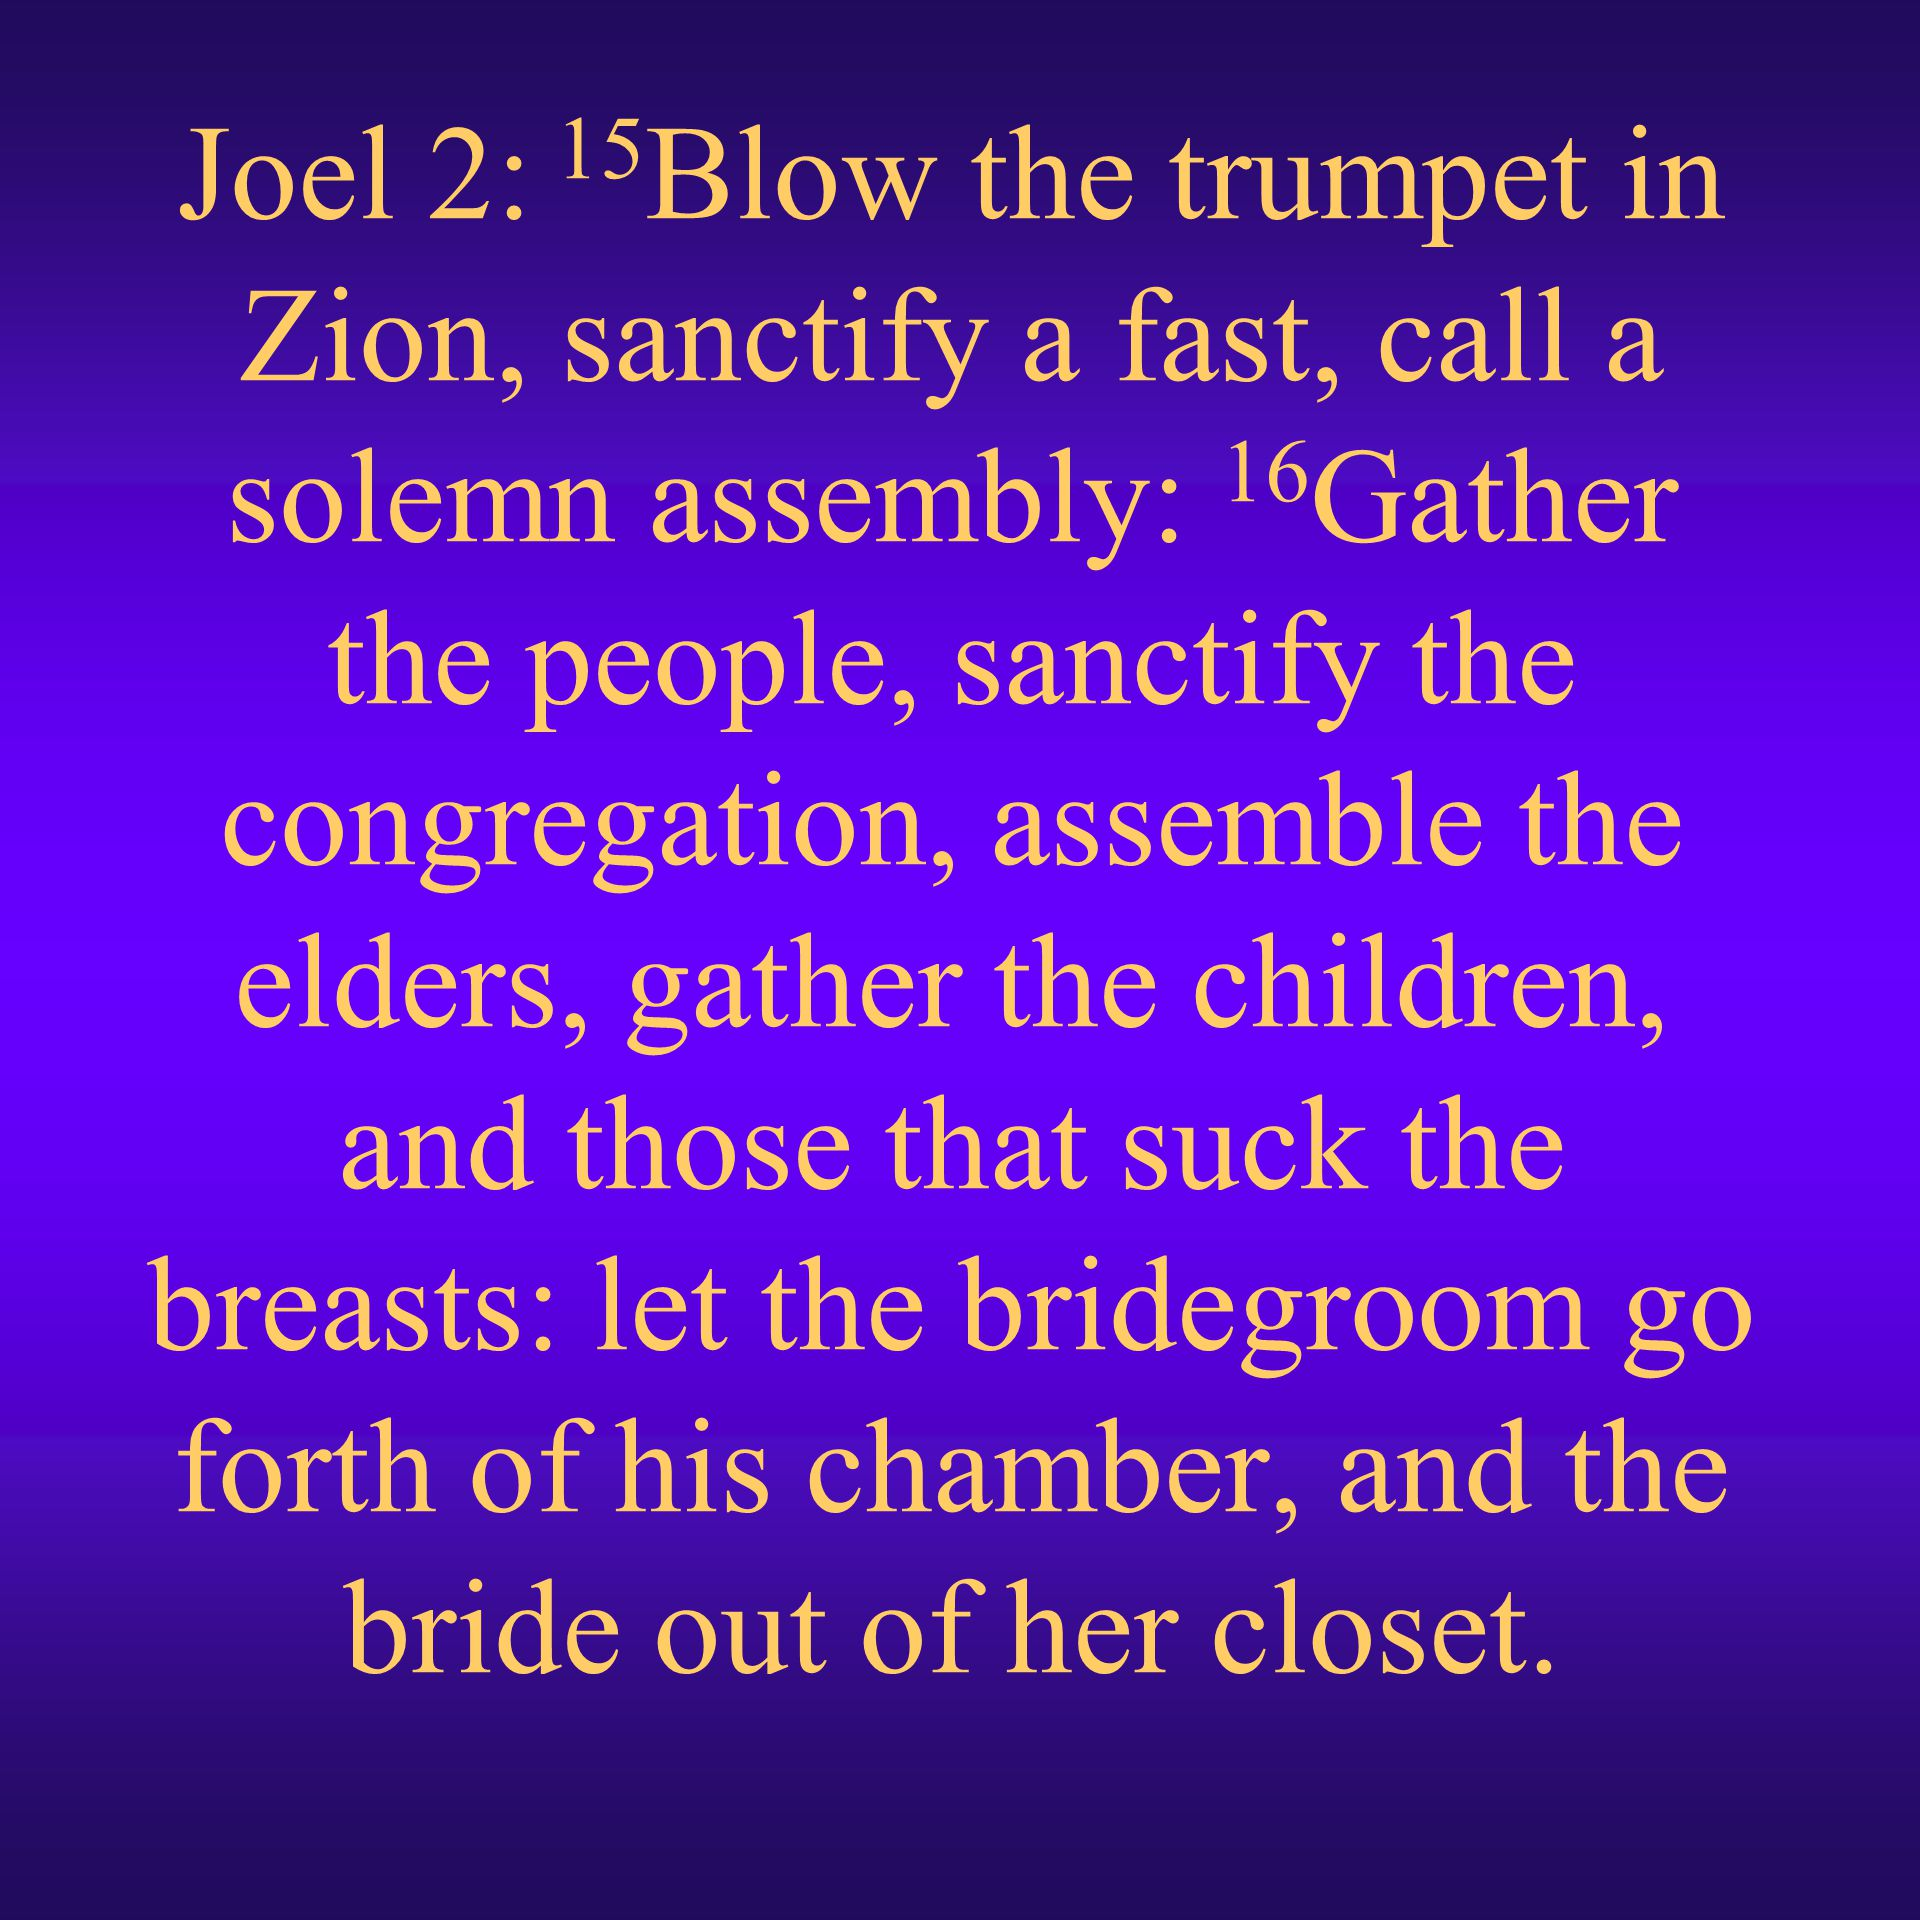 Joel 2: 15Blow the trumpet in Zion, sanctify a fast, call a solemn assembly: 16Gather the people, sanctify the congregation, assemble the elders, gather the children, and those that suck the breasts: let the bridegroom go forth of his chamber, and the bride out of her closet.